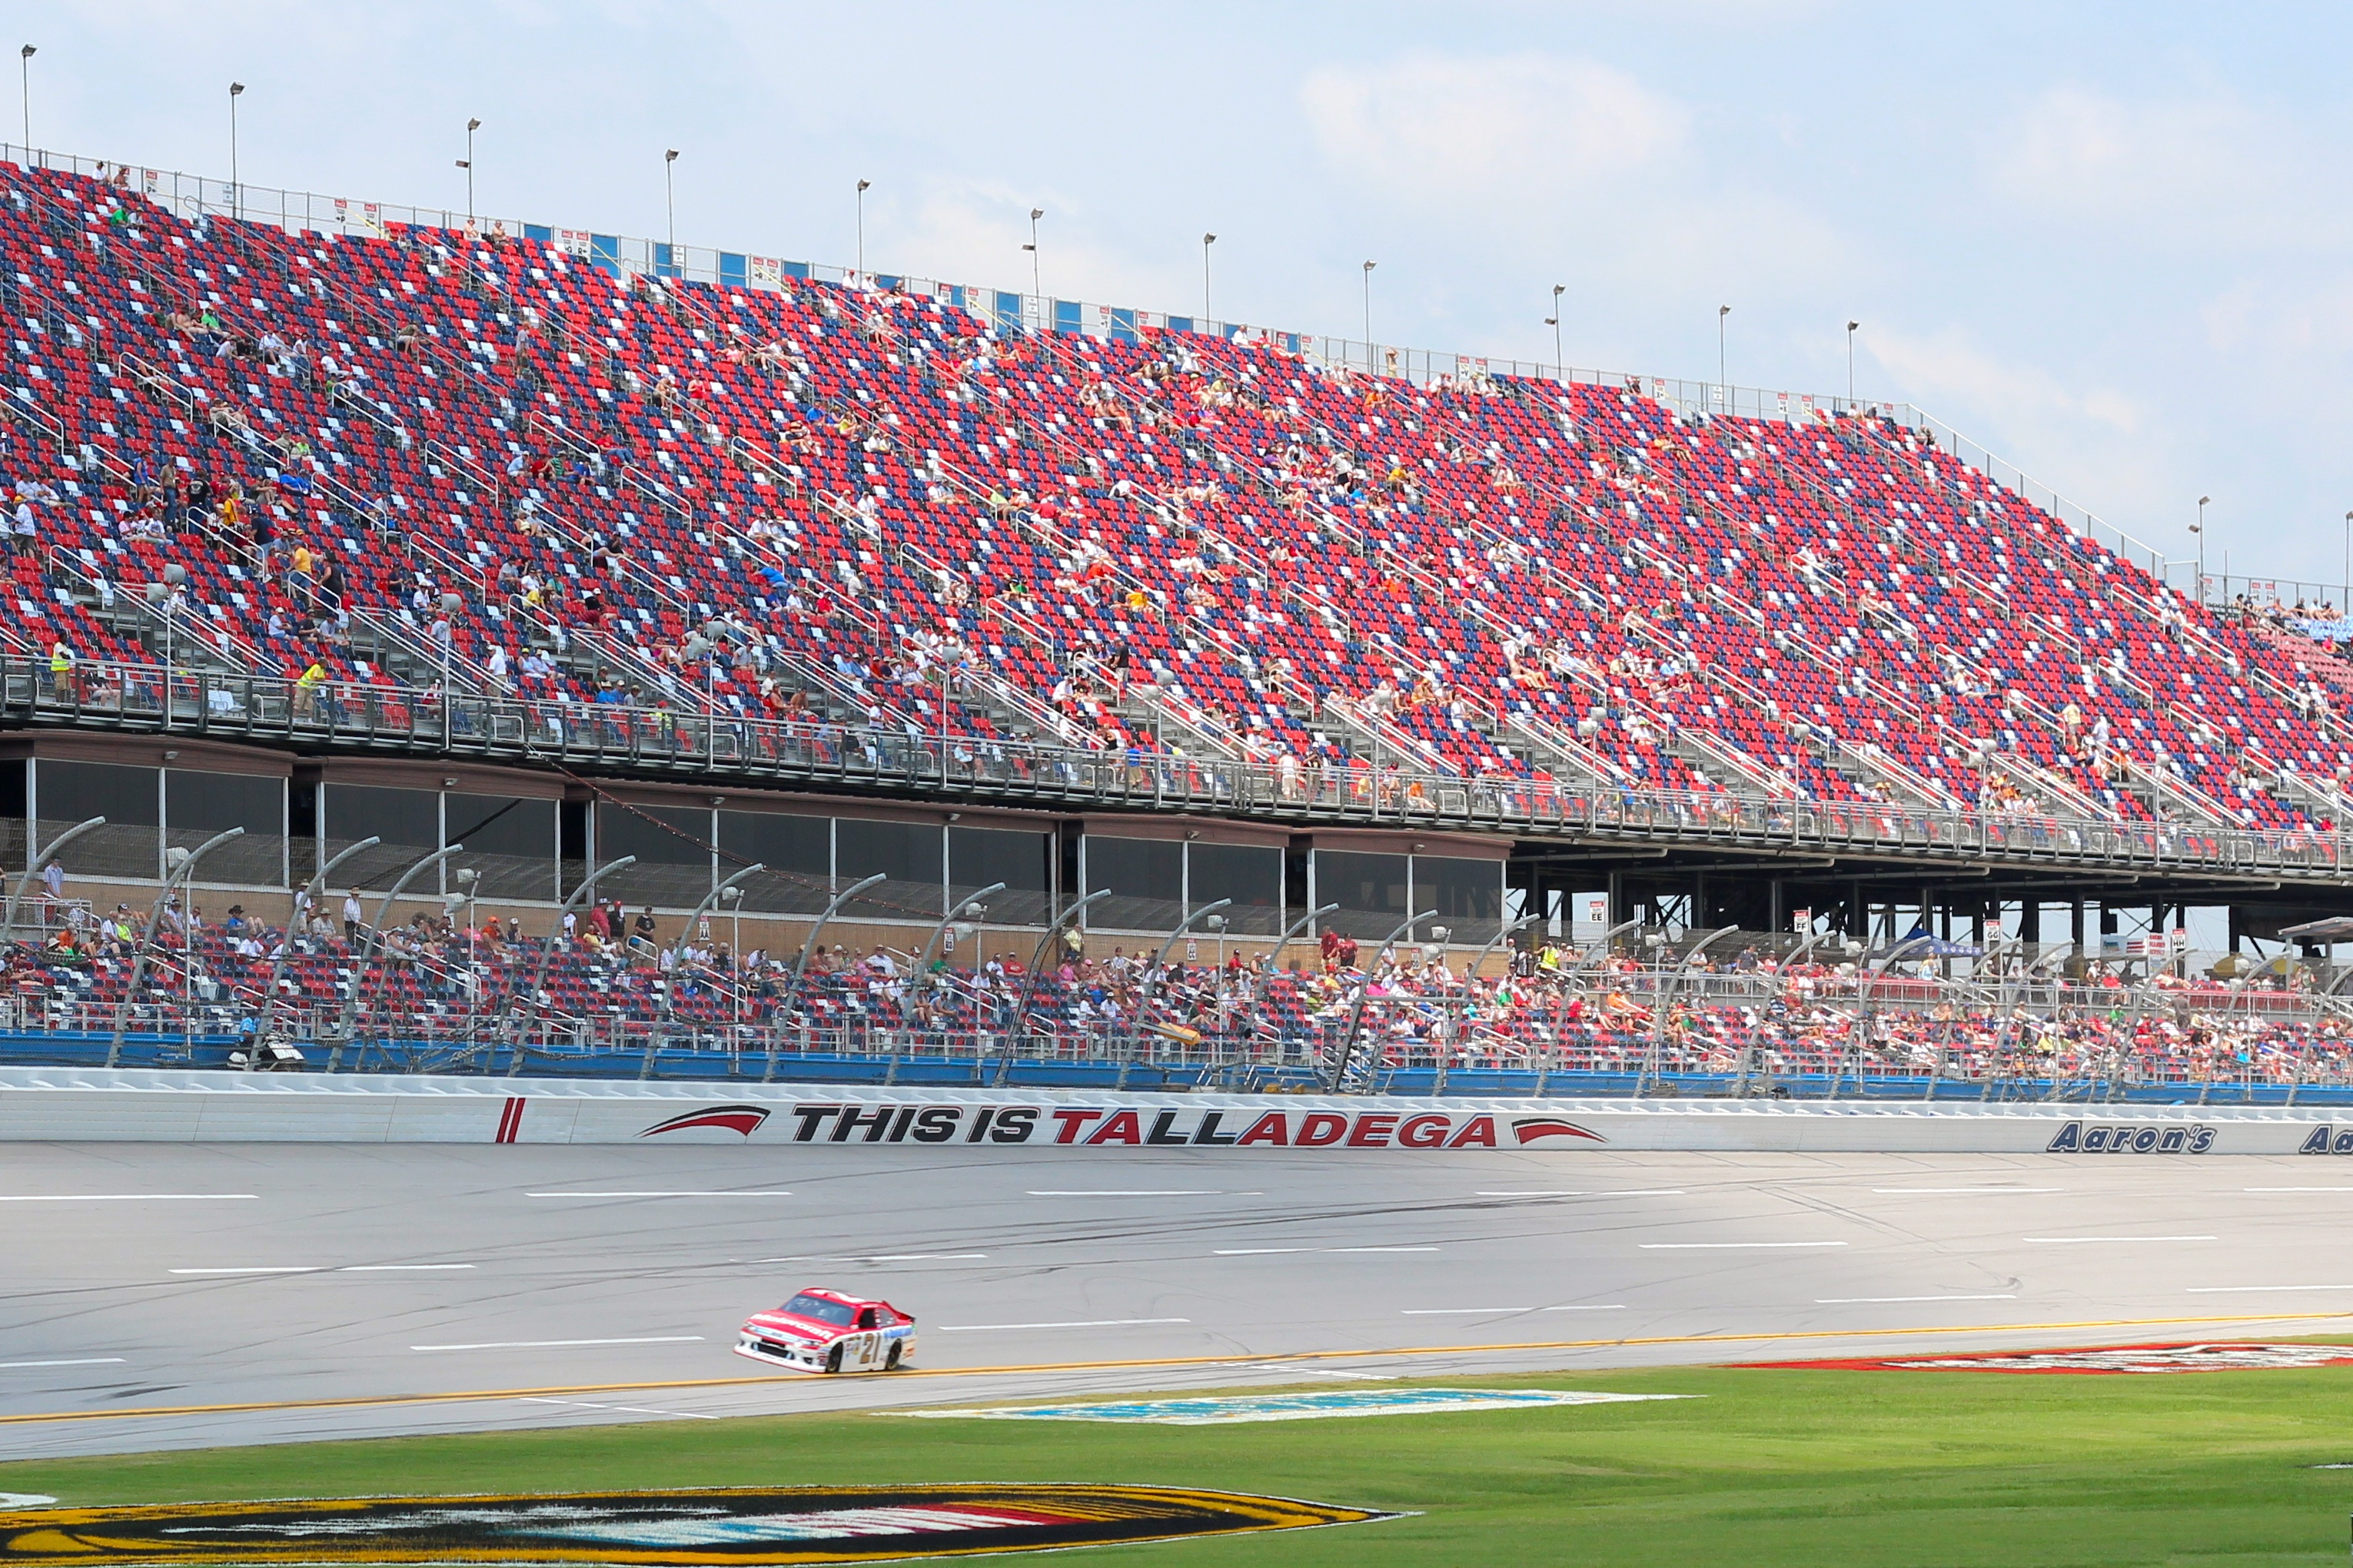 A car zooms past a red, white and blue grandstand.